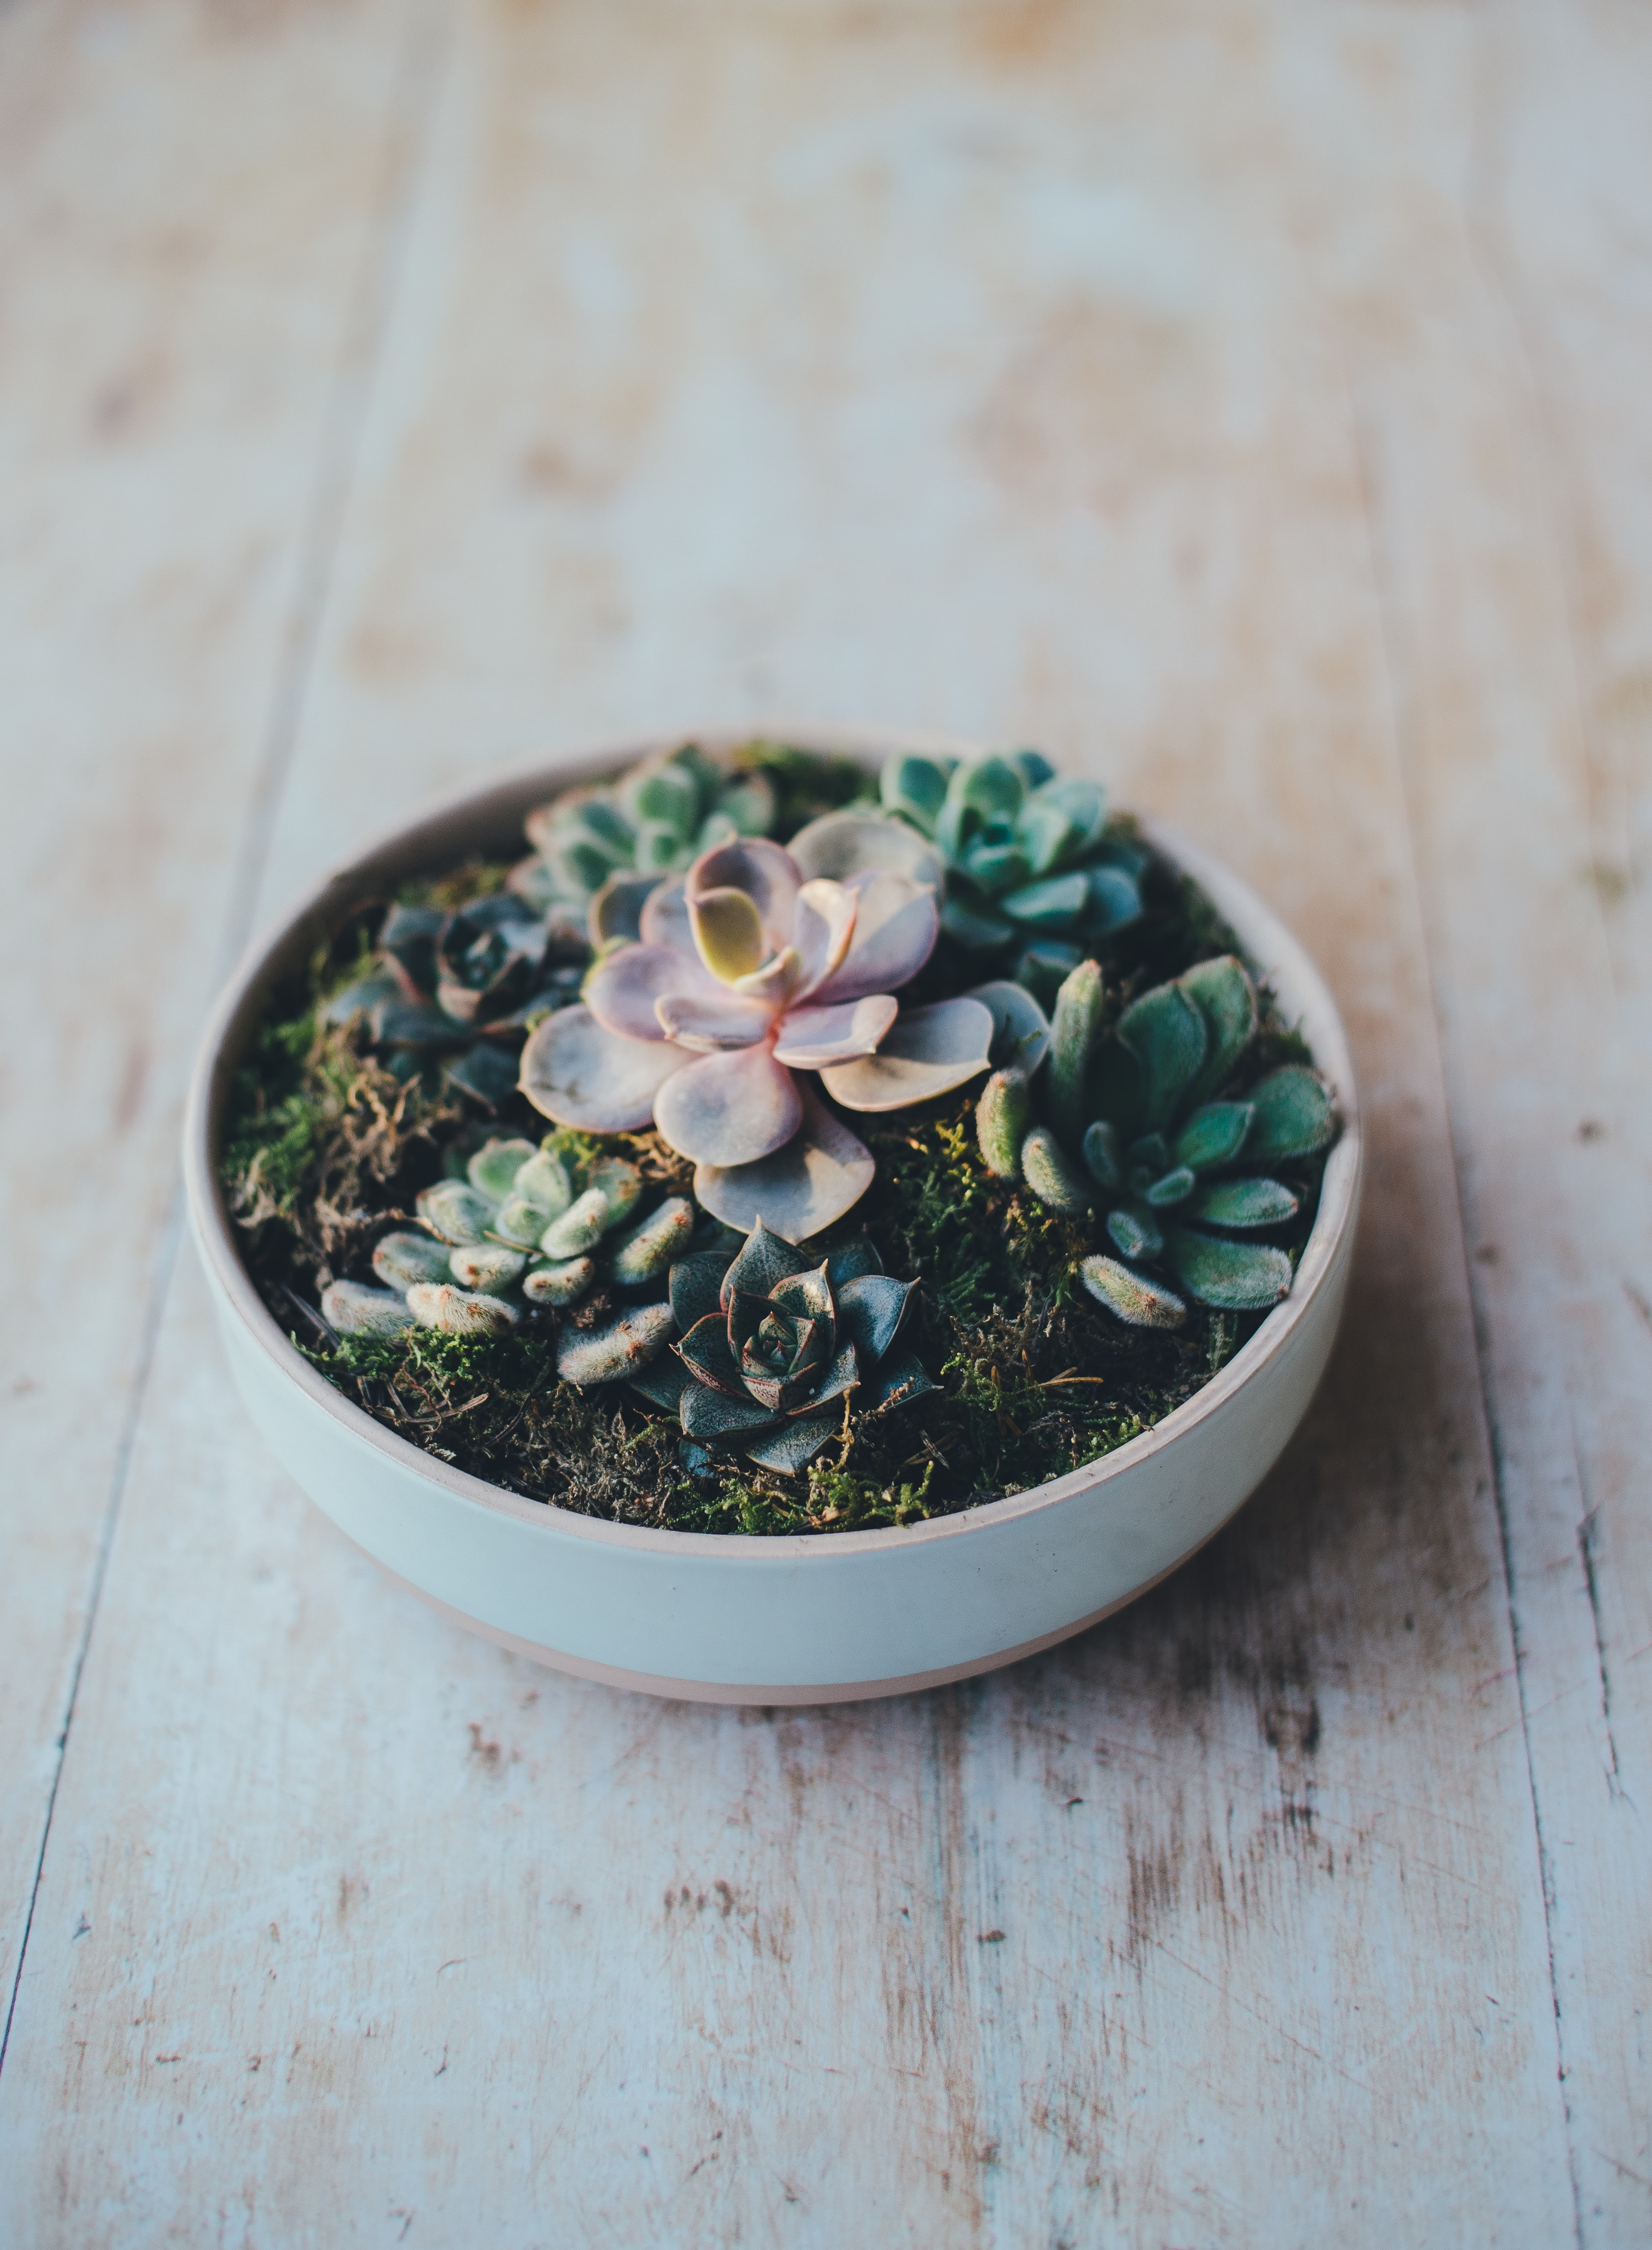 A bowl of succulents on a table